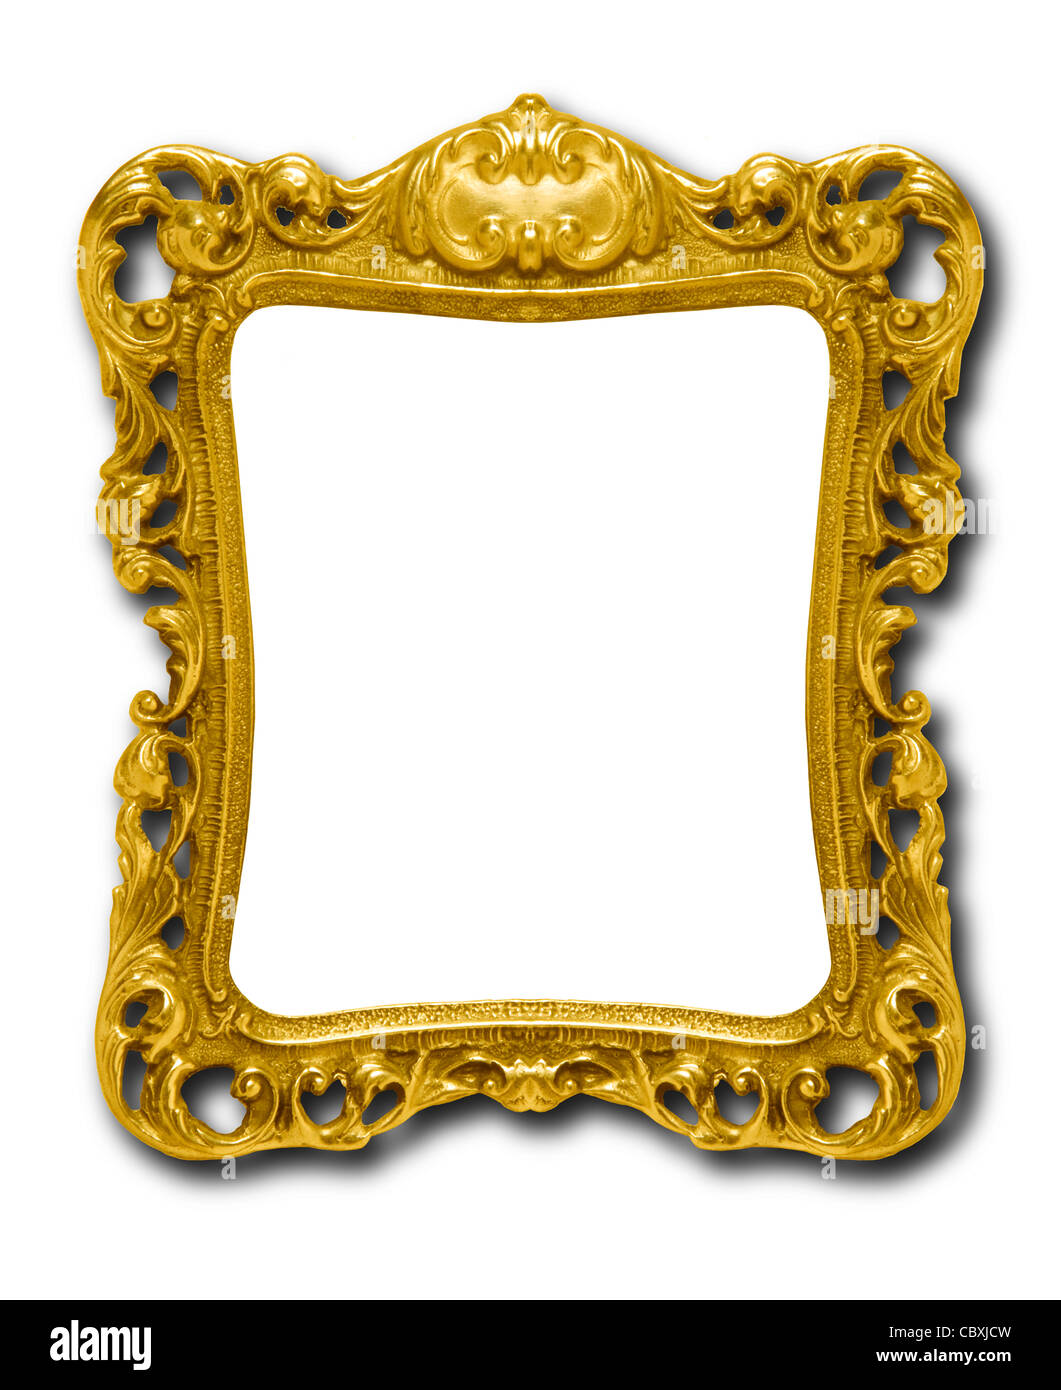 Ornate gold picture frame silhouetted against white background with drop shadow - Stock Image